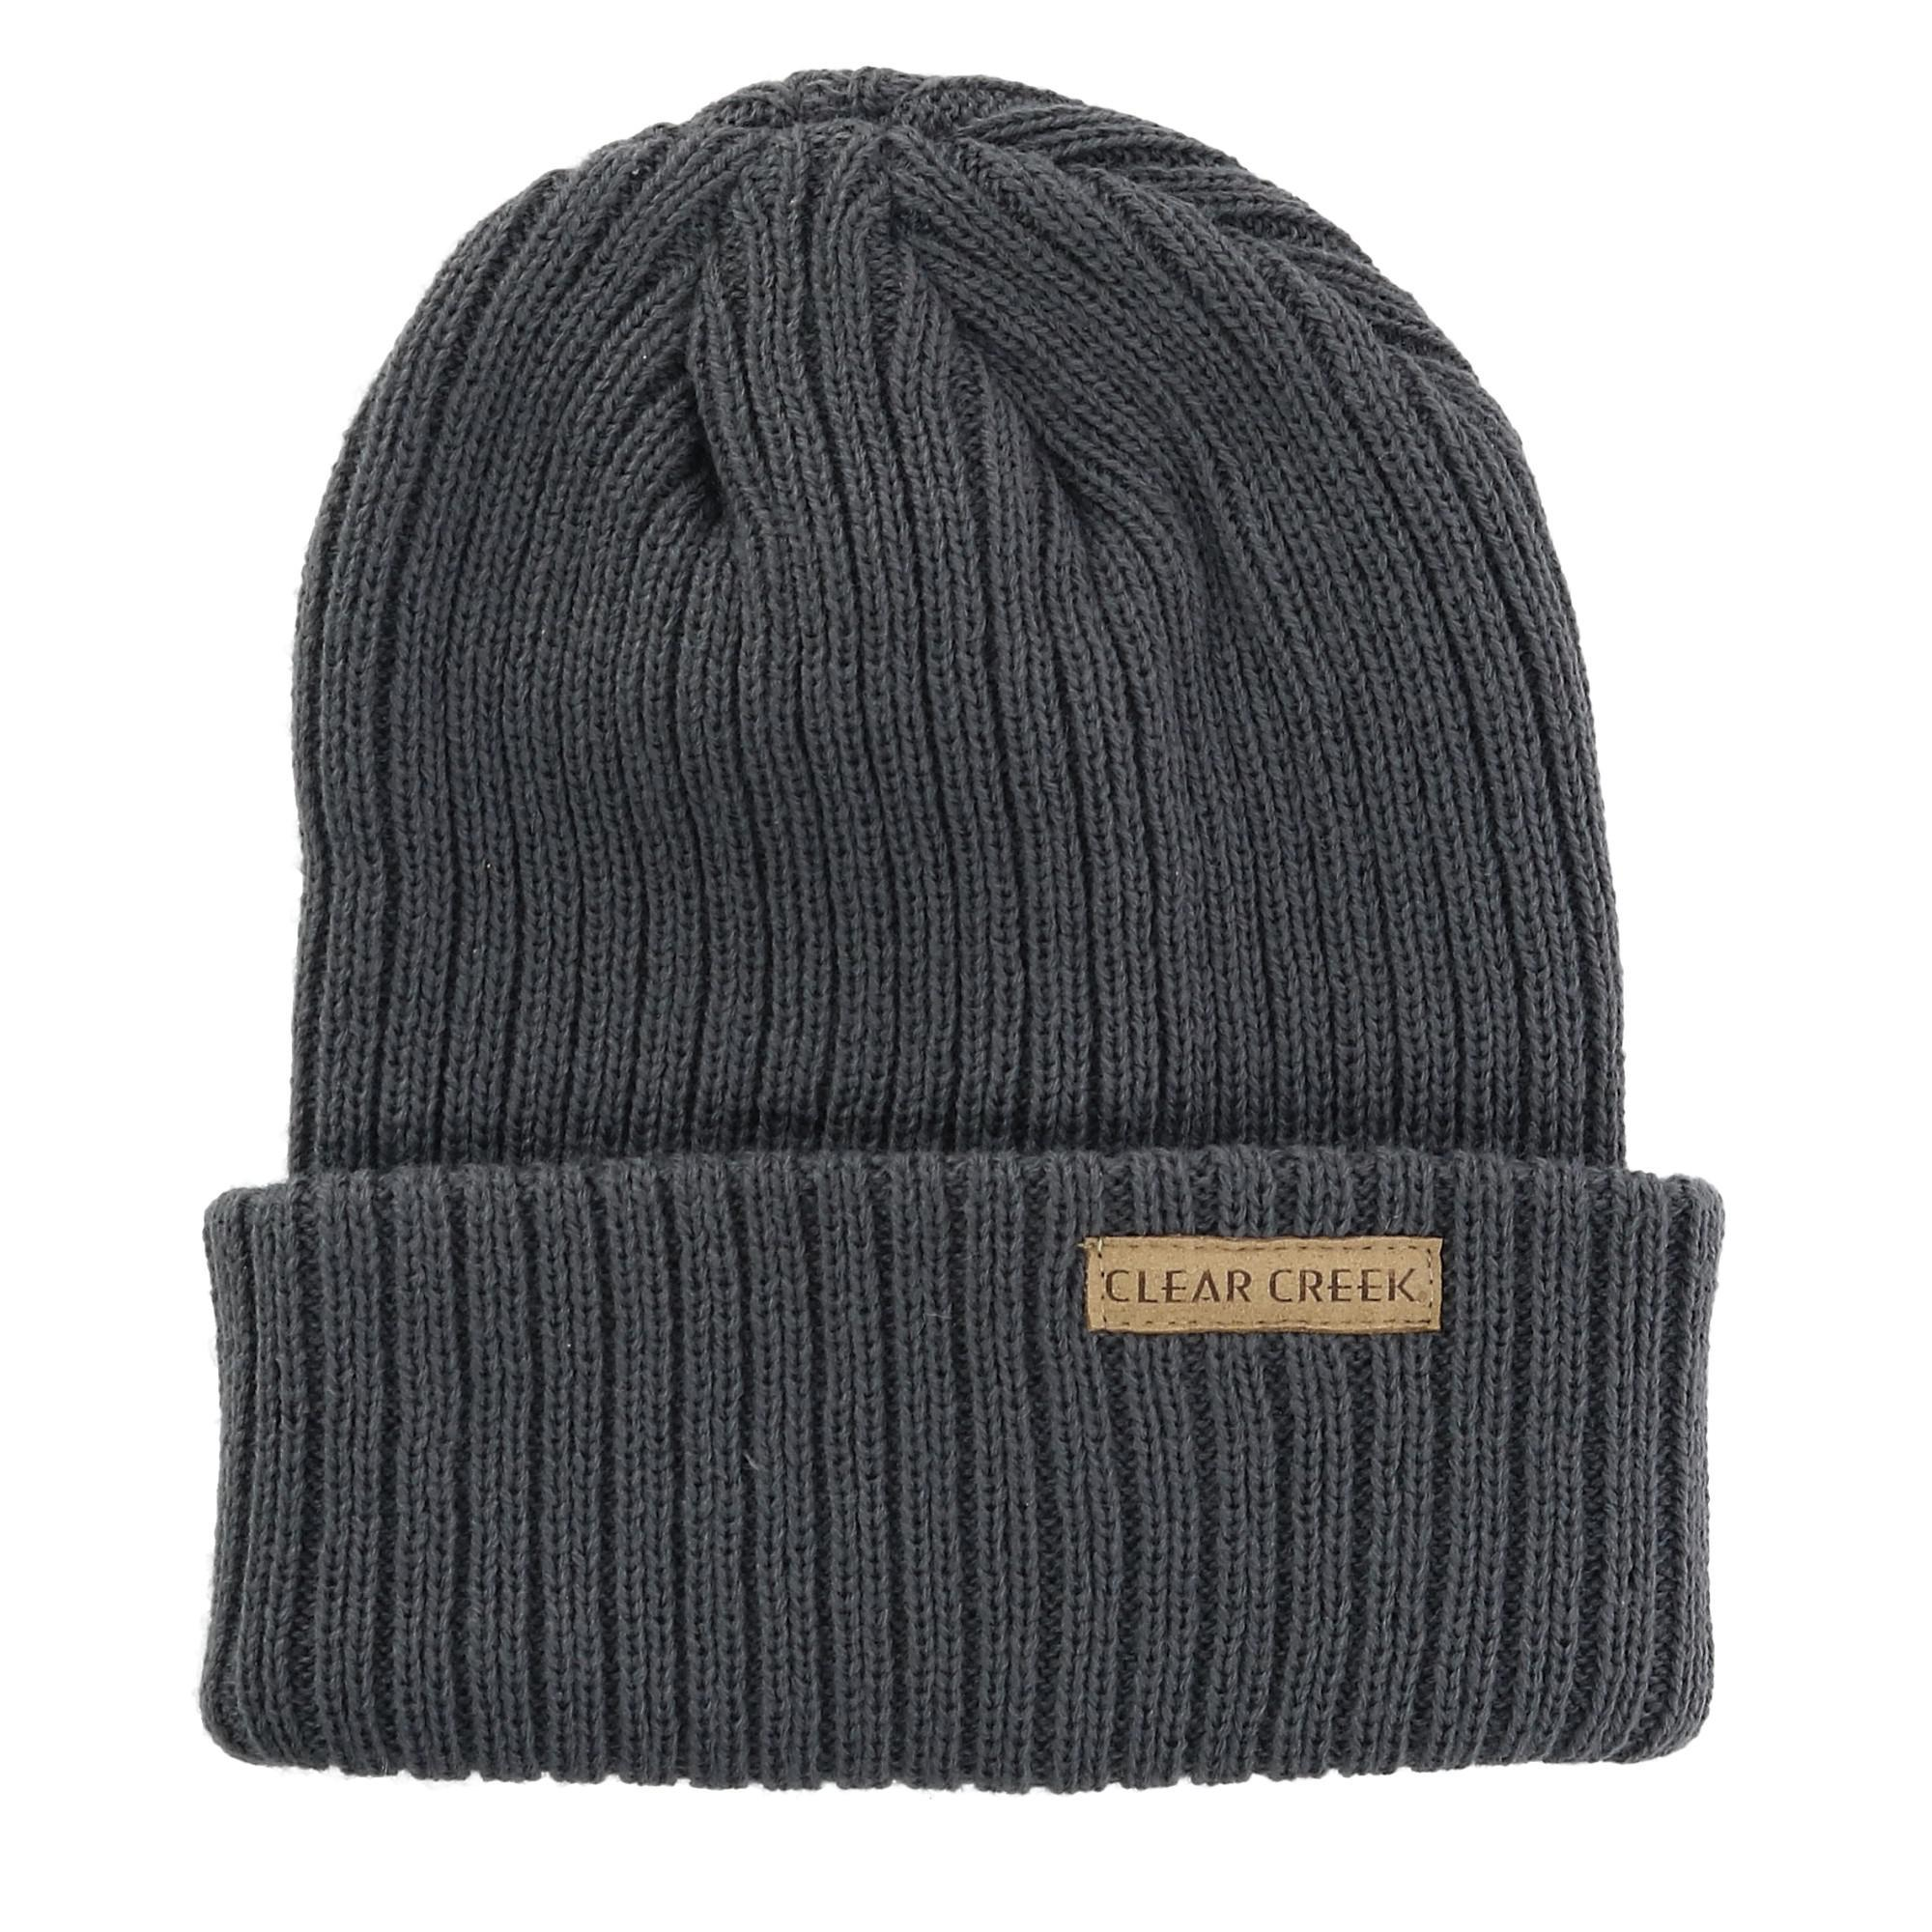 Clear Creek Men's Ribbed Knit Cuff Cap - Grey one size